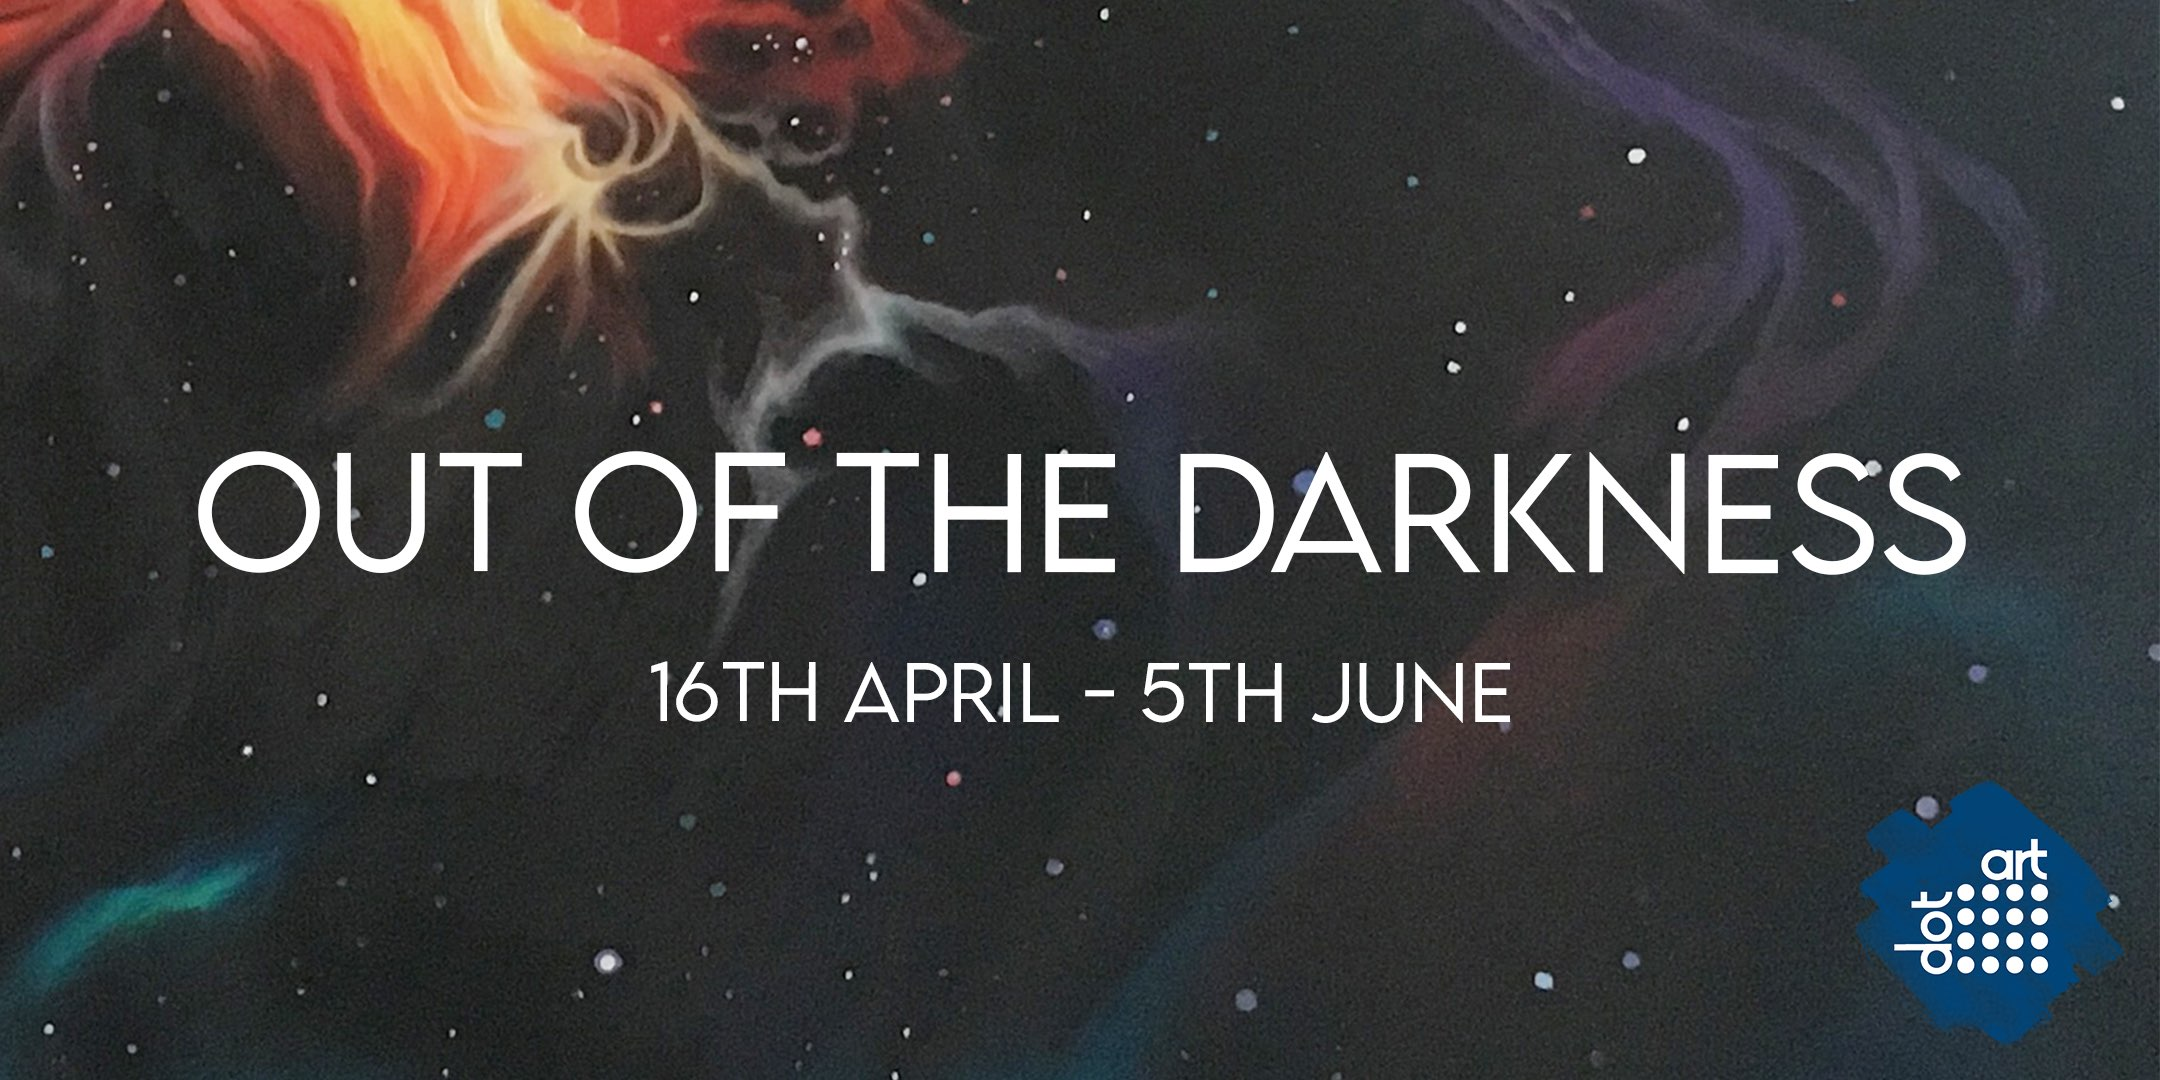 Out of the Darkness Exhibition